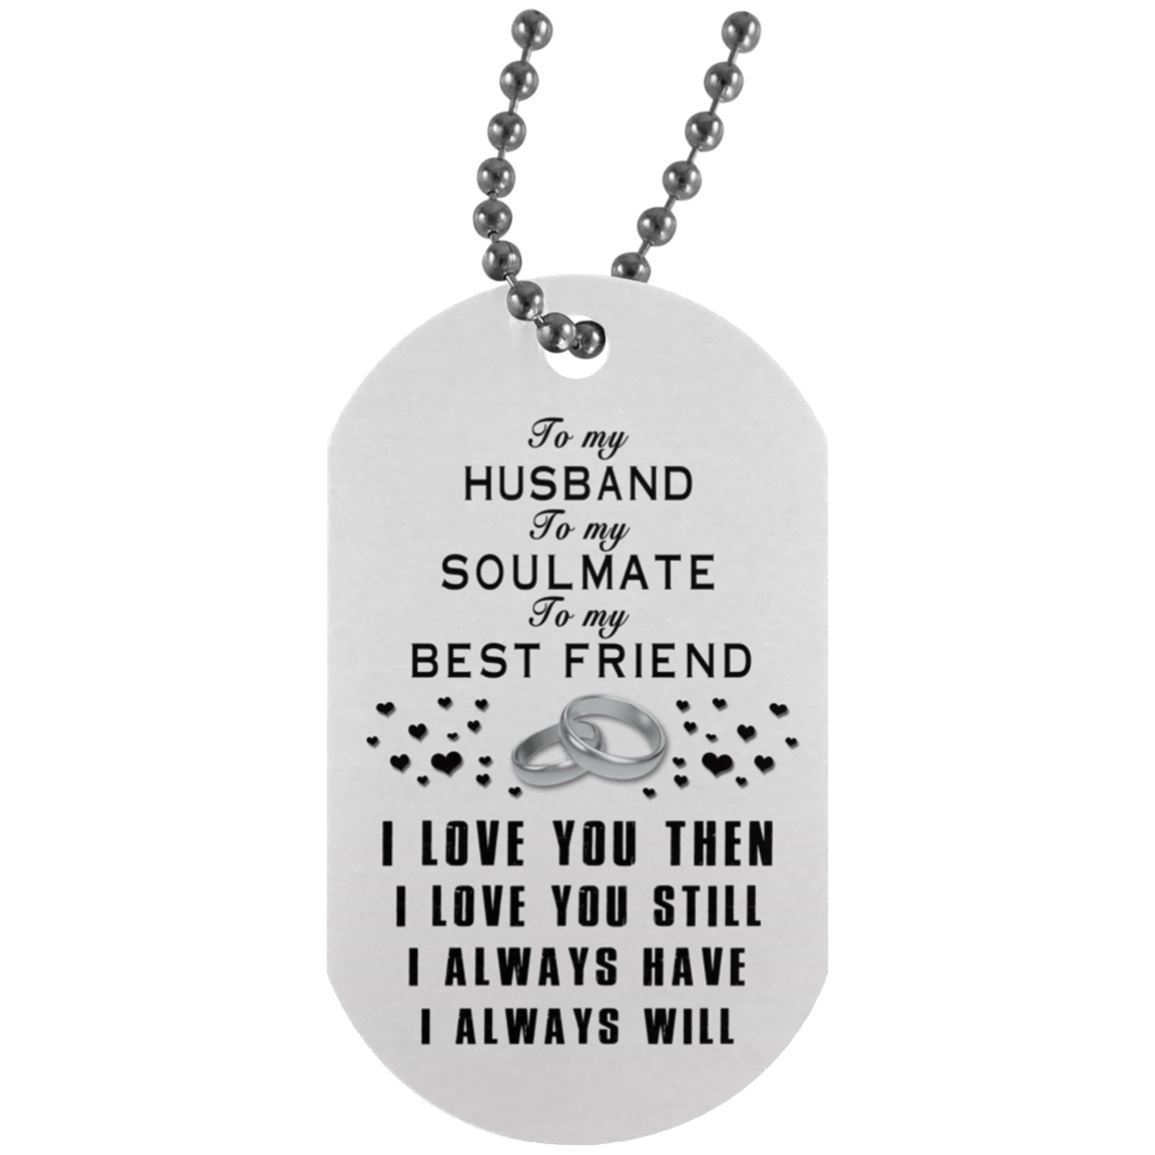 collection eternal soulmate image necklace mia collections matovic